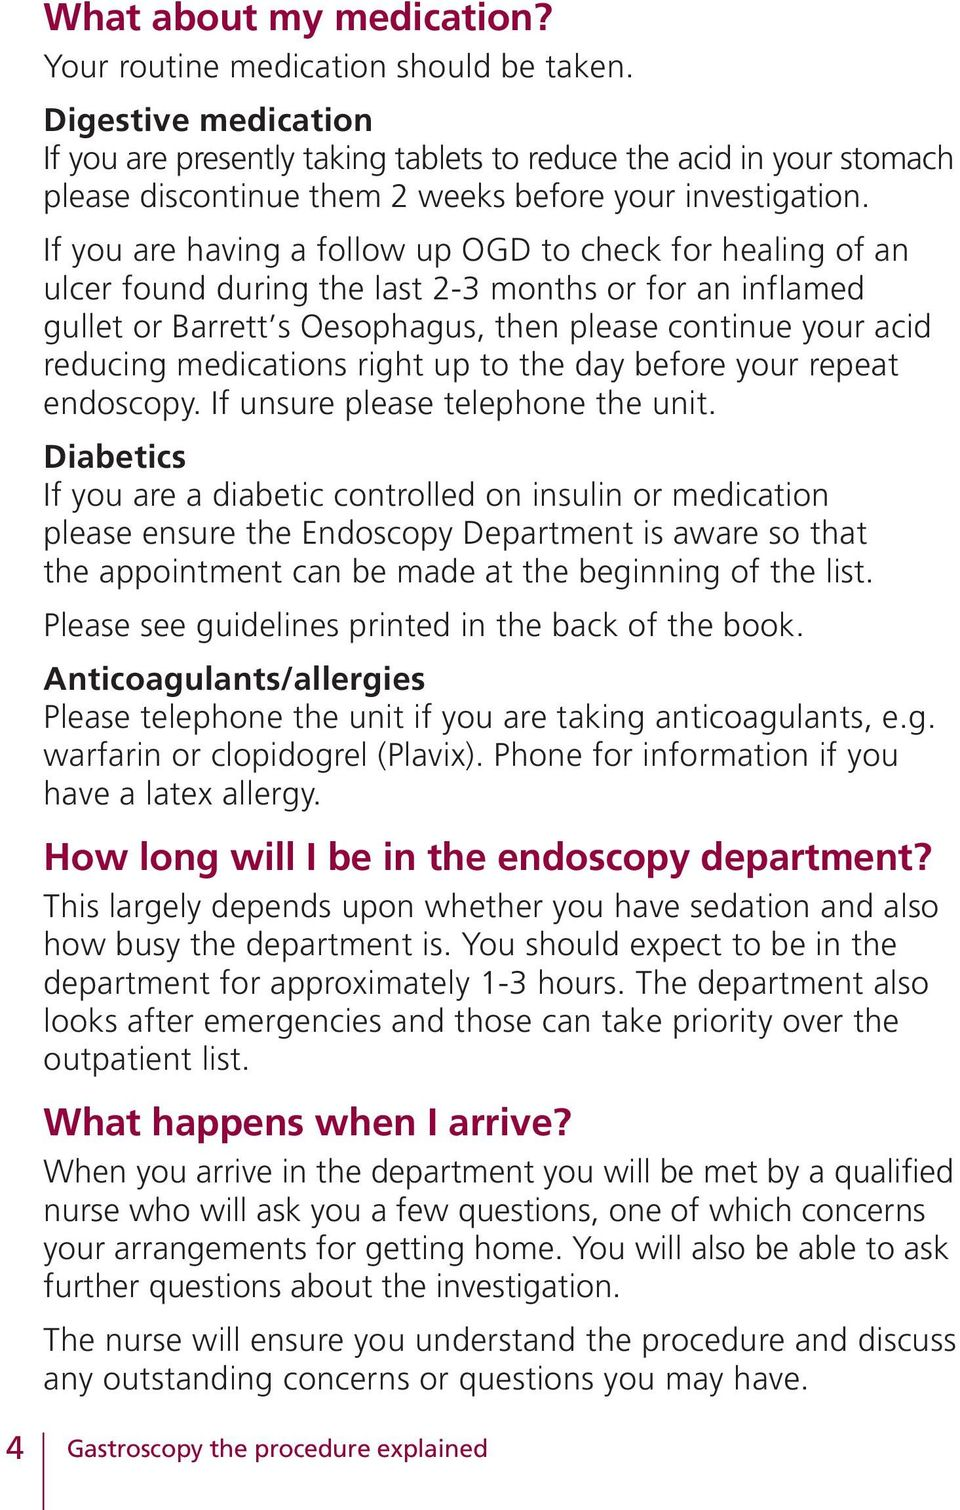 If you are having a follow up OGD to check for healing of an ulcer found during the last 2-3 months or for an inflamed gullet or Barrett s Oesophagus, then please continue your acid reducing